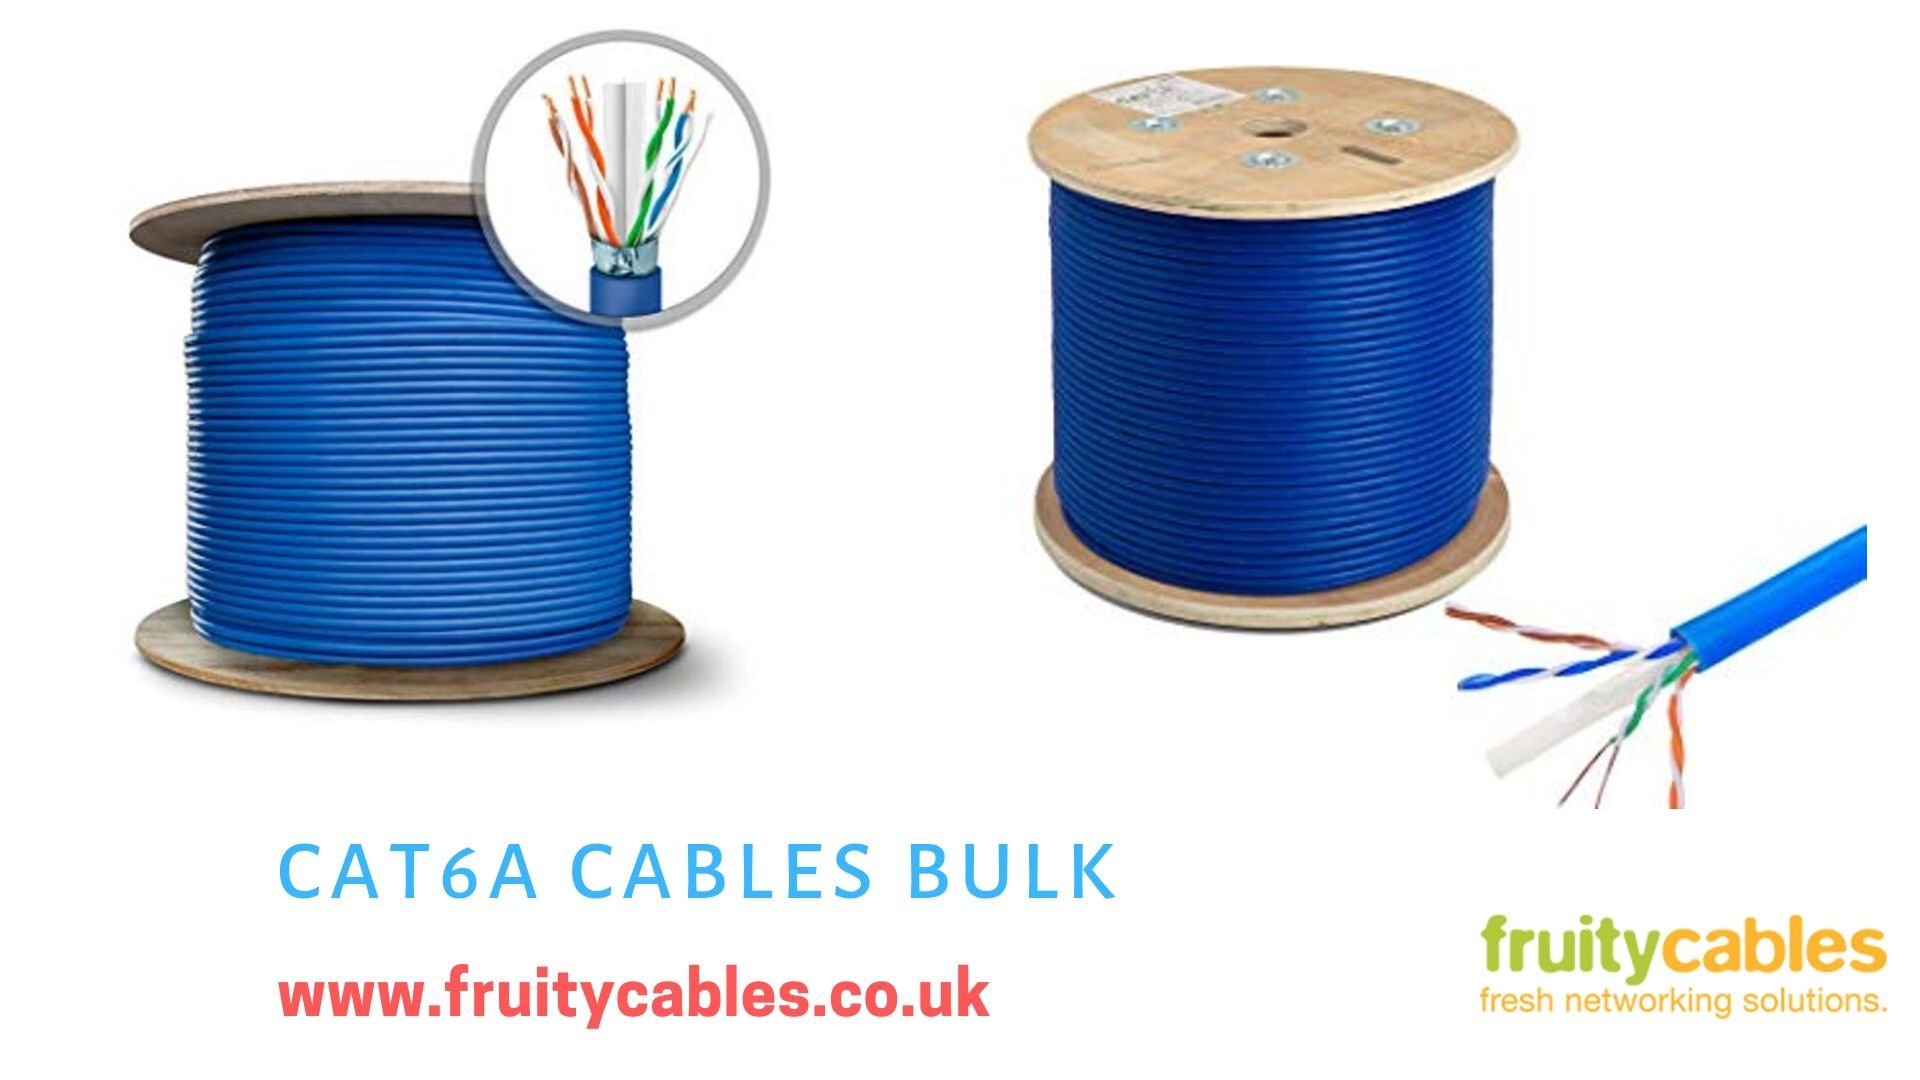 Cat6a cables are designed to support highbandwidth and